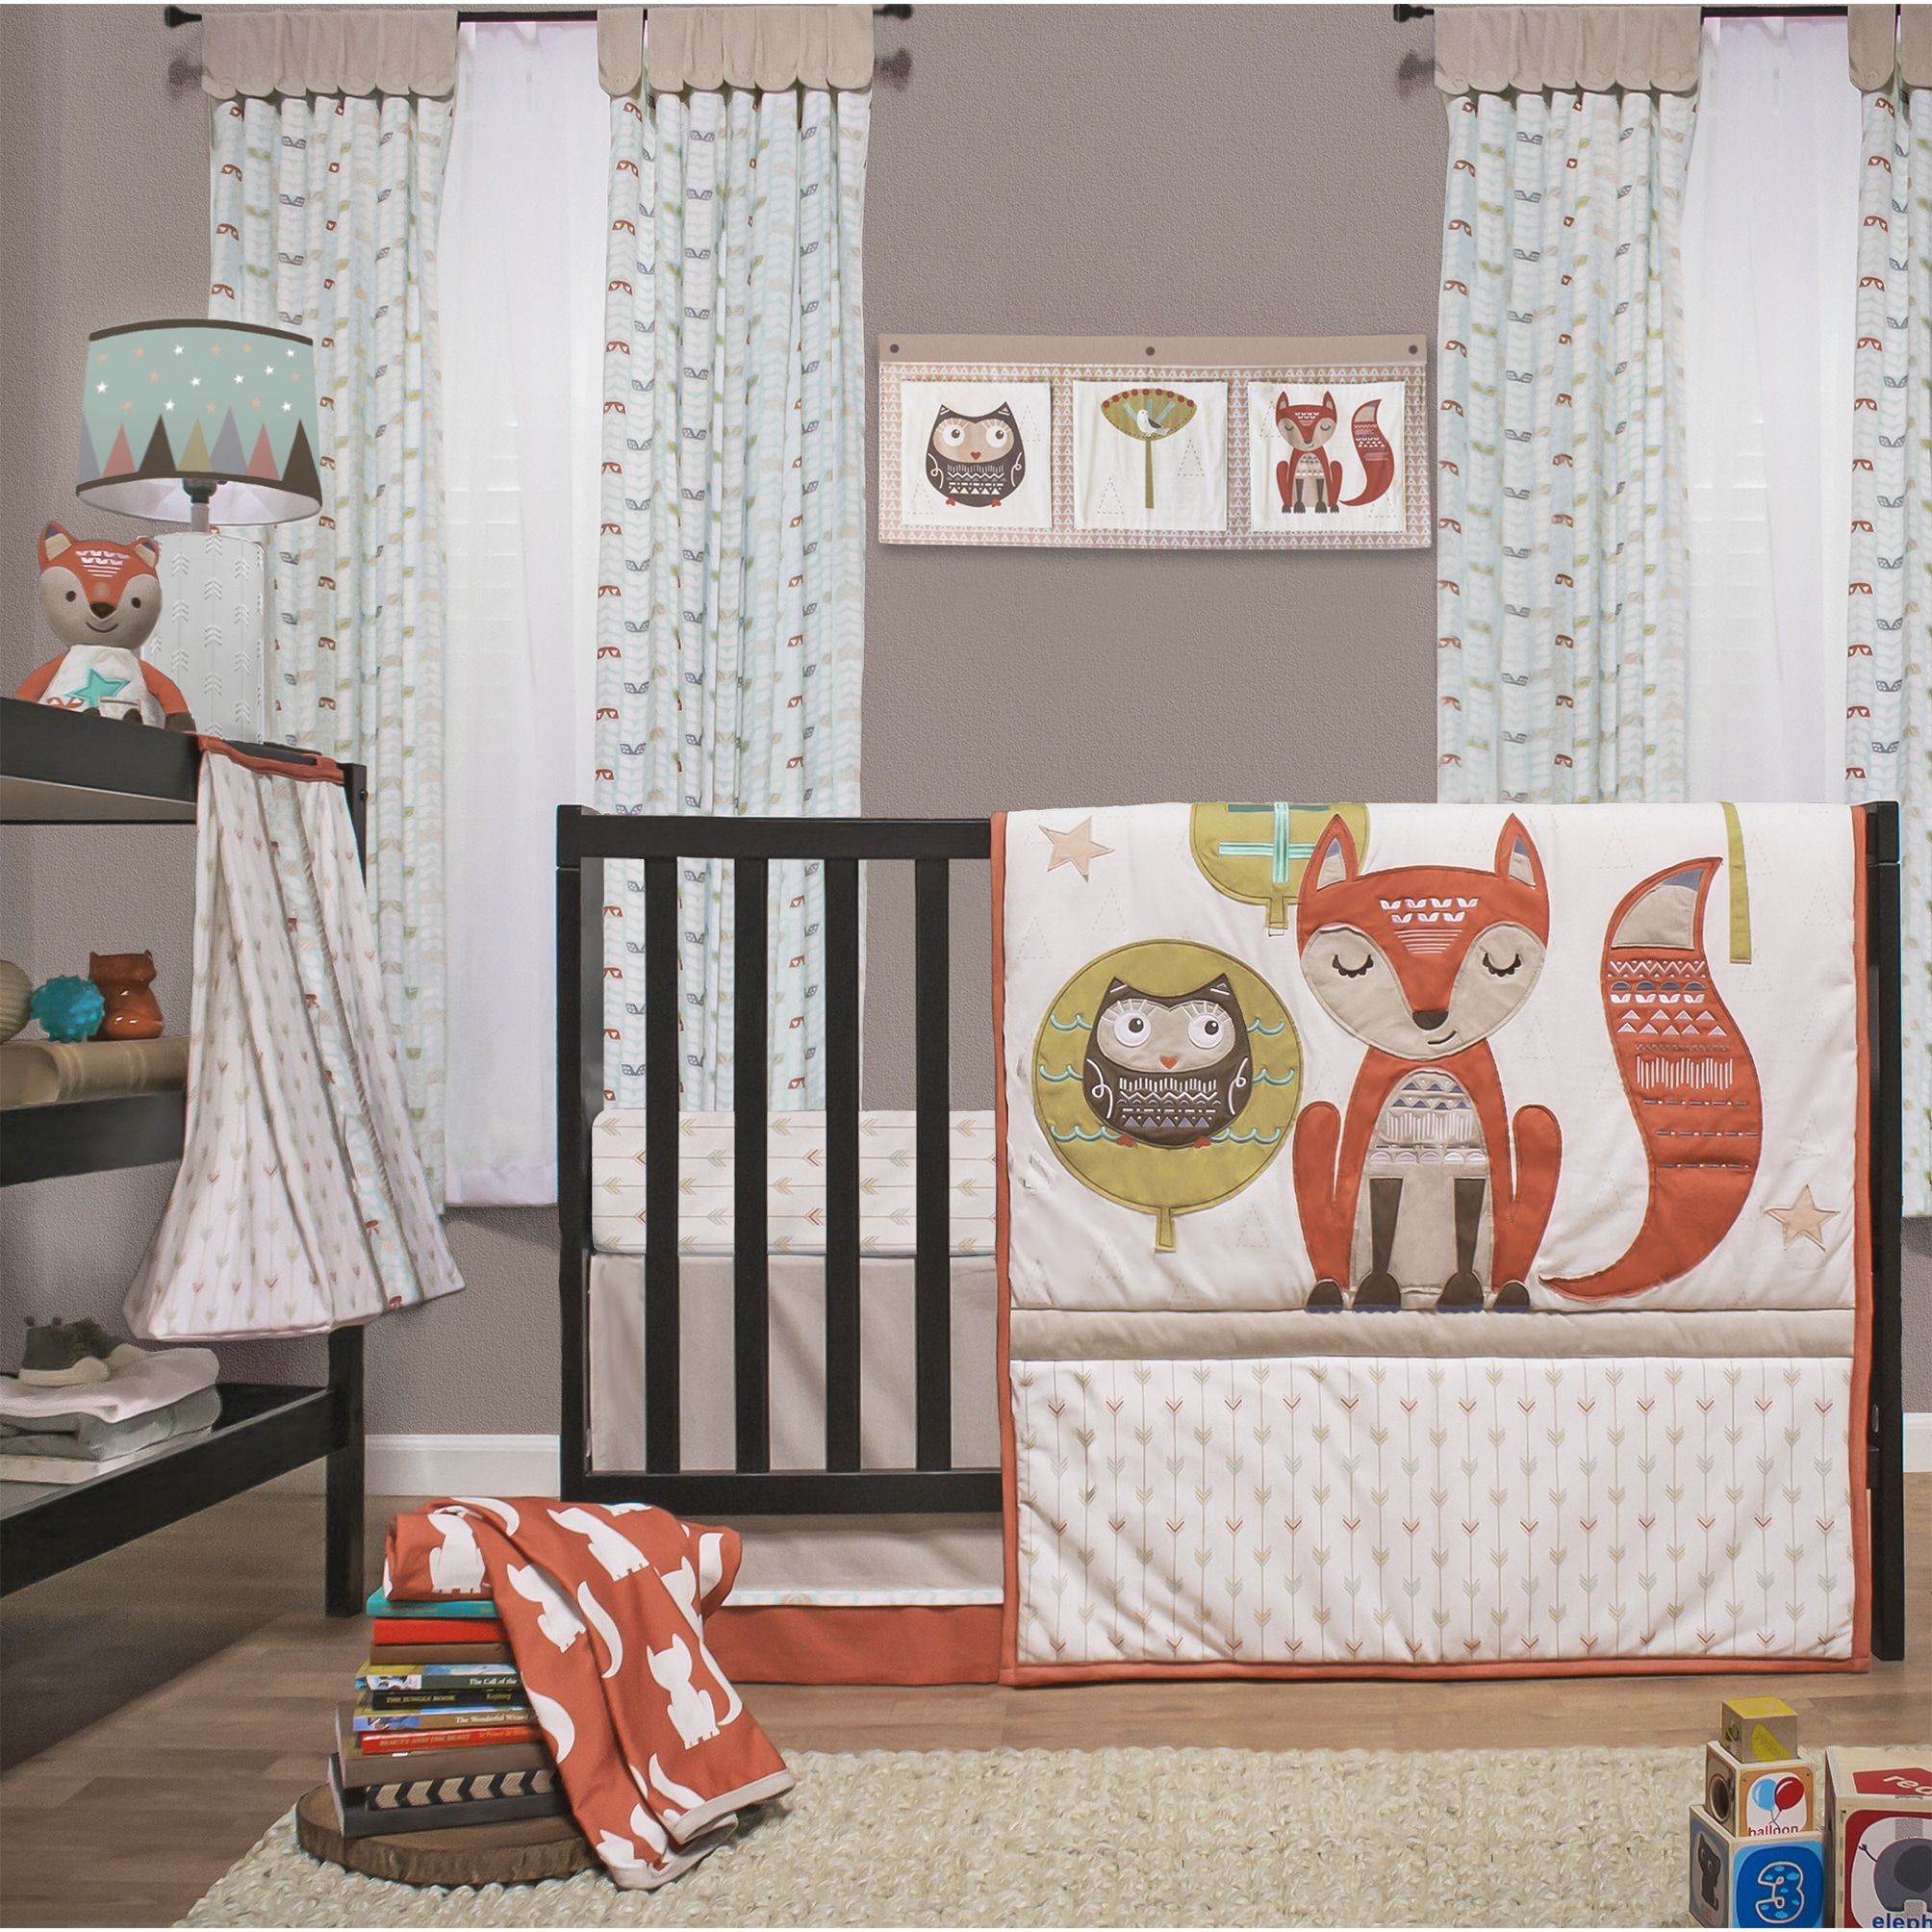 Full Crib Bedding Sets Little Haven Clever Fox 4 Piece Crib Bedding Set